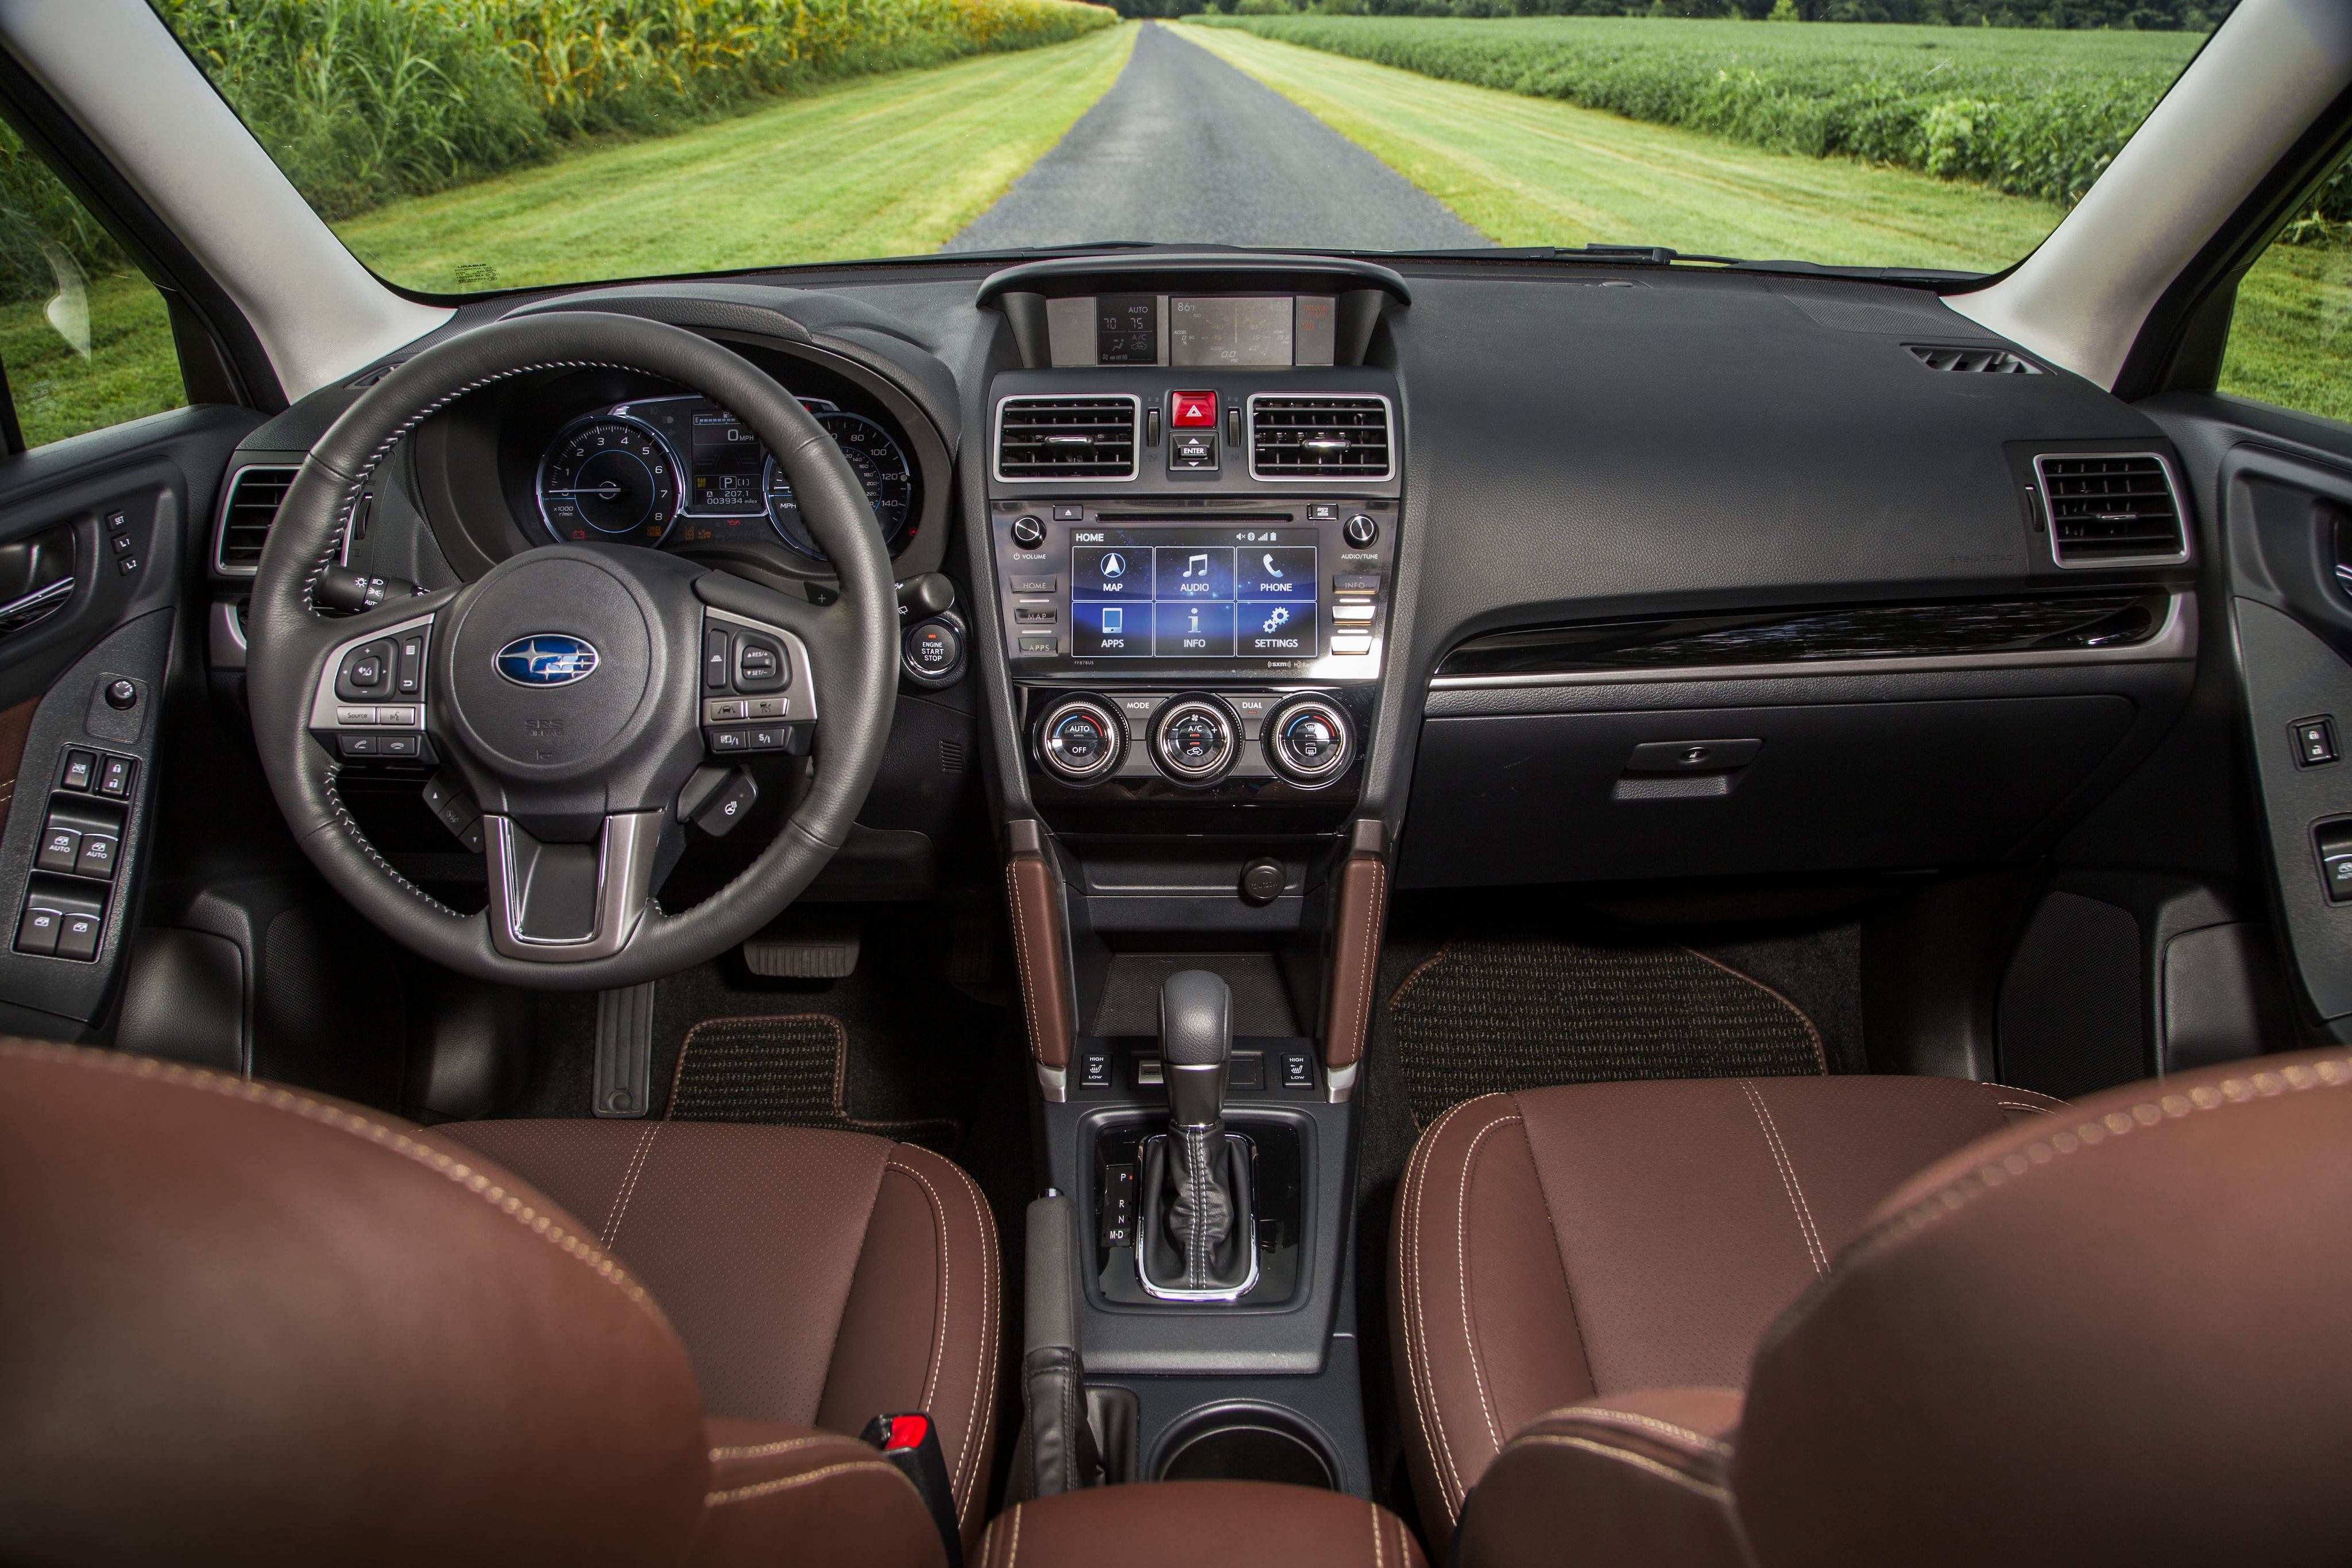 interior upgrades in the 2017 Subaru Forester near Orlando